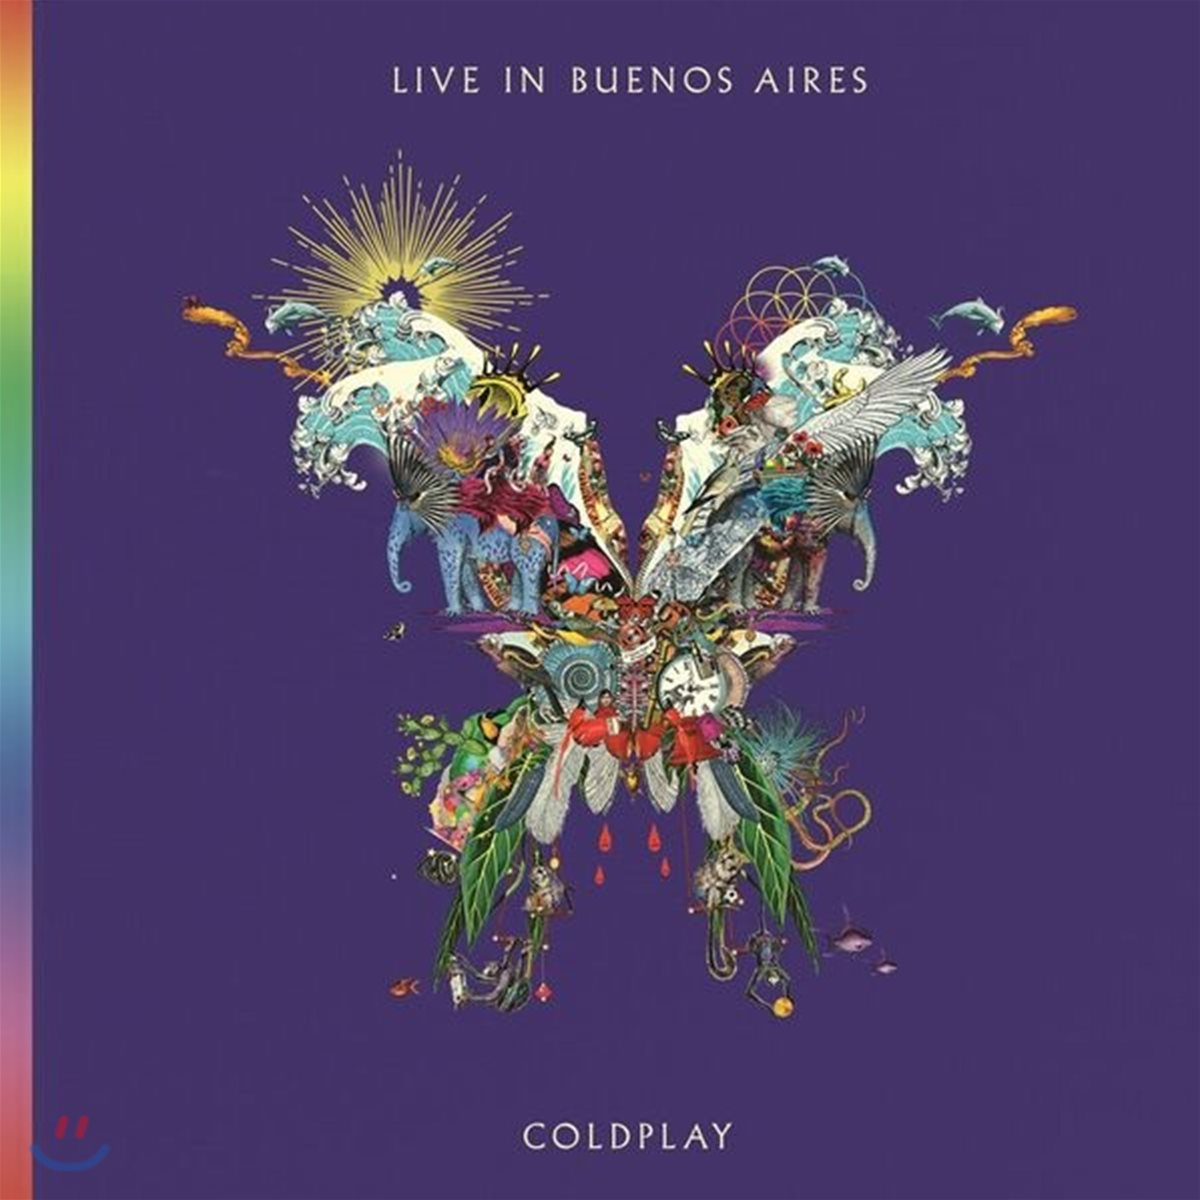 Coldplay - Live In Buenos Aires 콜드플레이 라이브 앨범 [2CD]